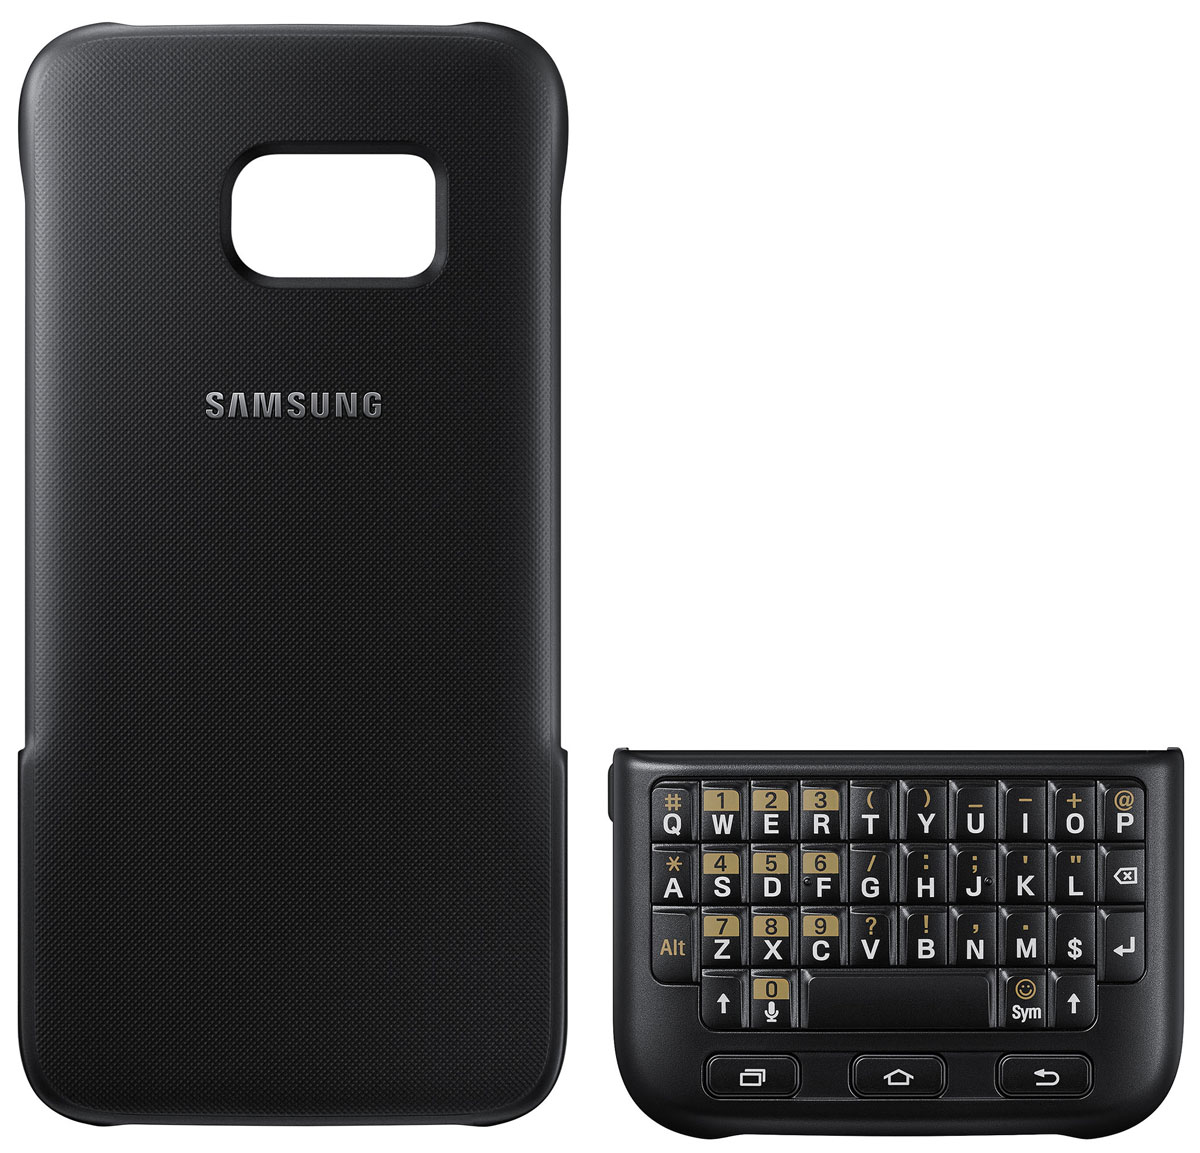 Samsung EJ-CG930 Keyboard Cover чехол-клавиатура для Galaxy S7, Black samsung keyboard cover s7 black ej cg930ubegru